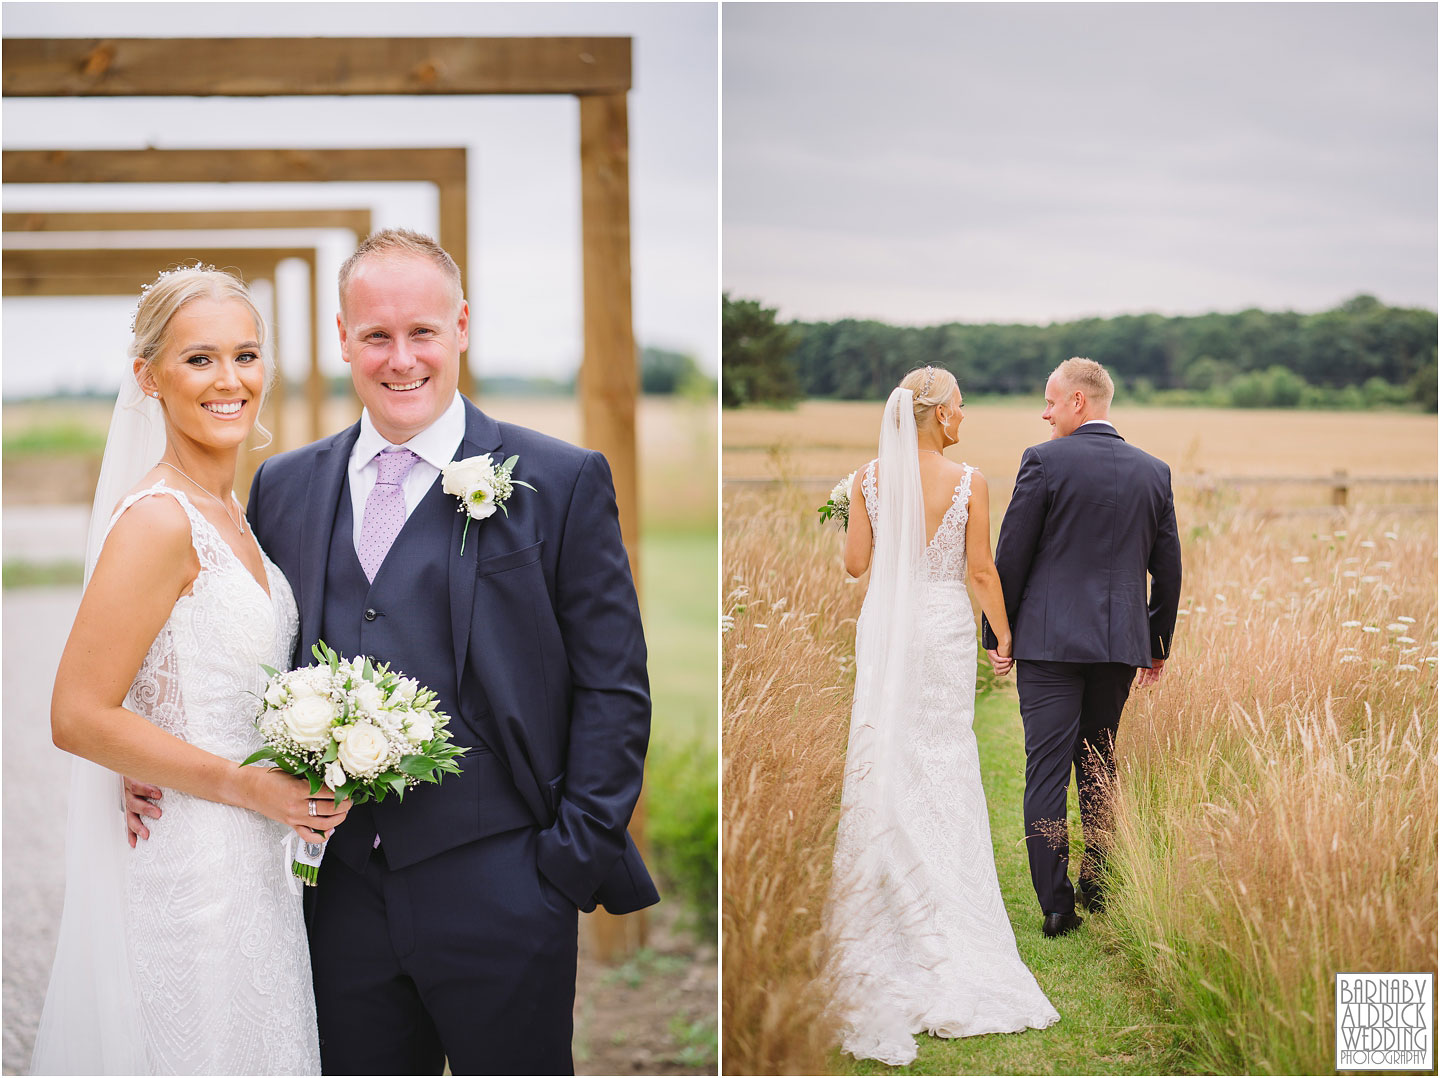 Beautiful bride and groom photos at The Oakwood at Ryther Wedding at The Oakwood at Ryther, Oakwood at Ryther wedding photographer, The Oakwood at Ryther wedding photos, Yorkshire wedding barn venue